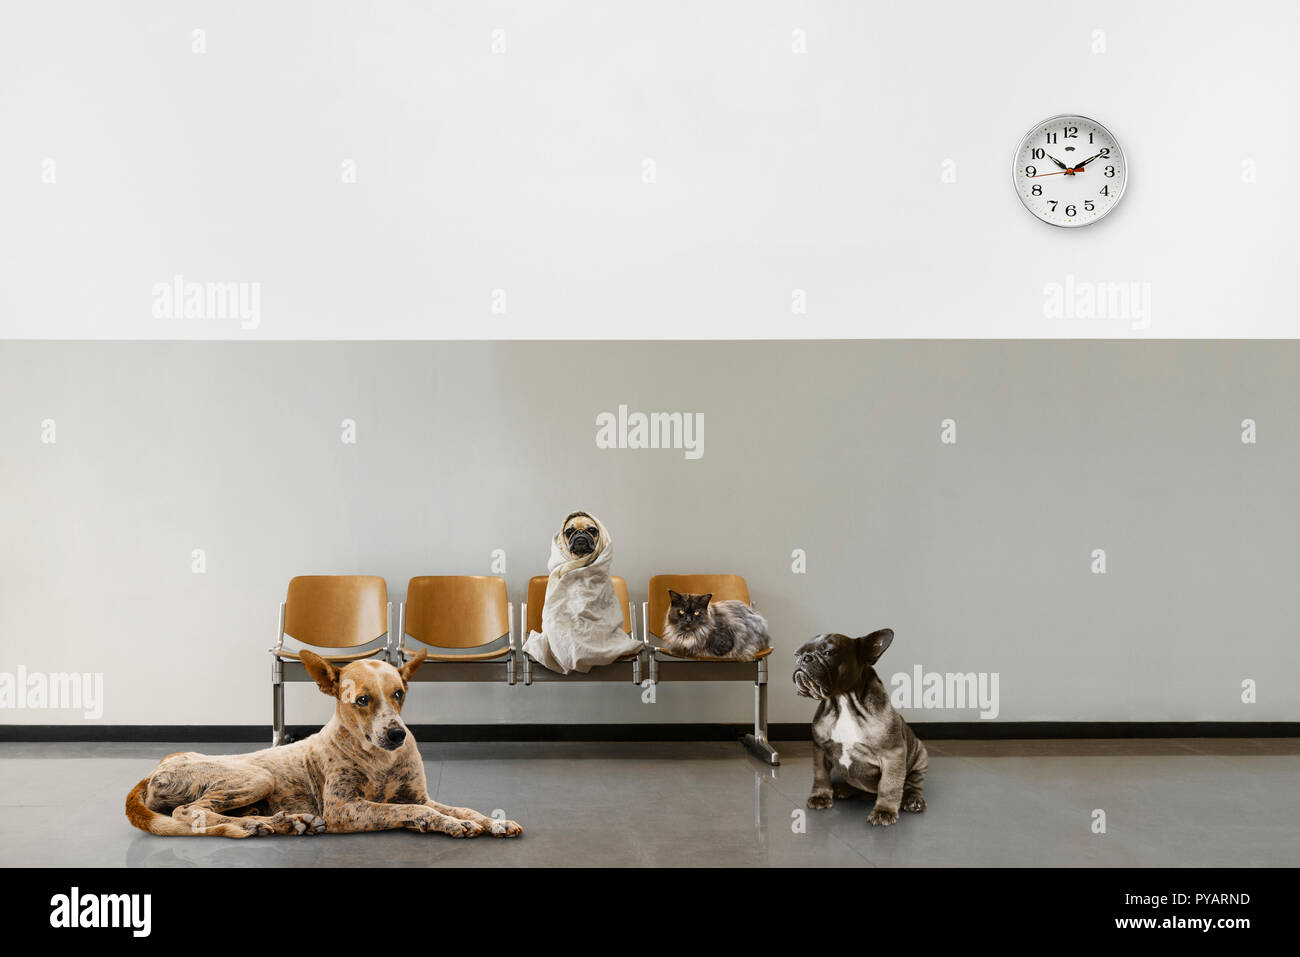 waiting room with chairs, clock and group of sitting animals - Stock Image